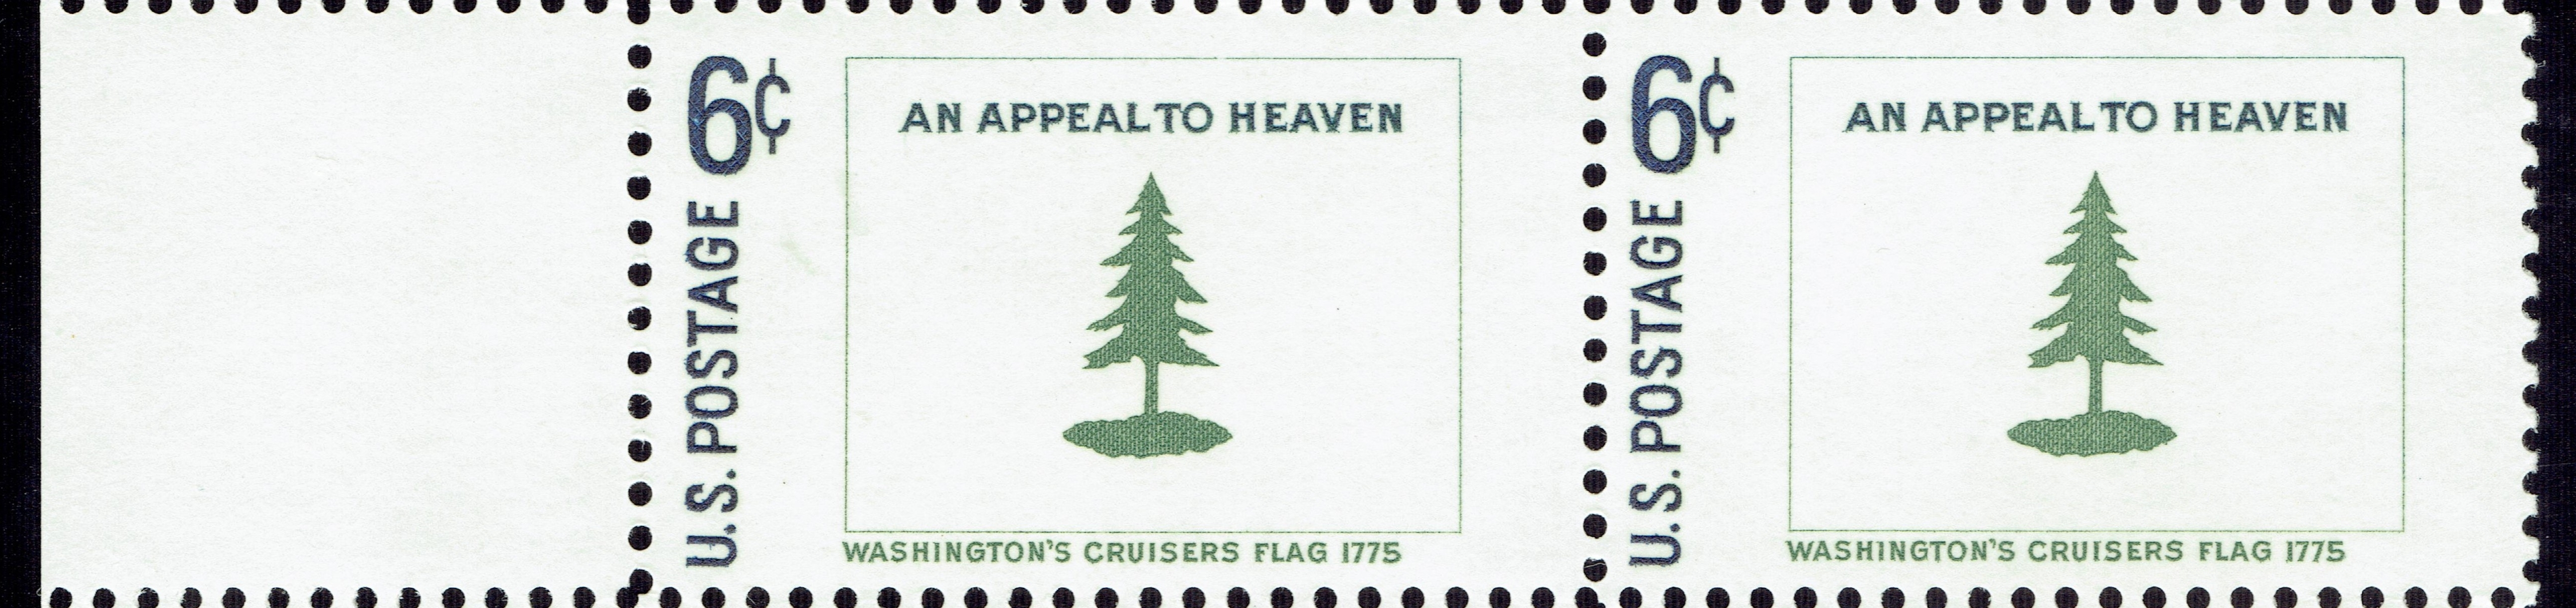 Liberty Tree Flag Appeal To Heaven Washington Cruisers Revolutionary War Banner